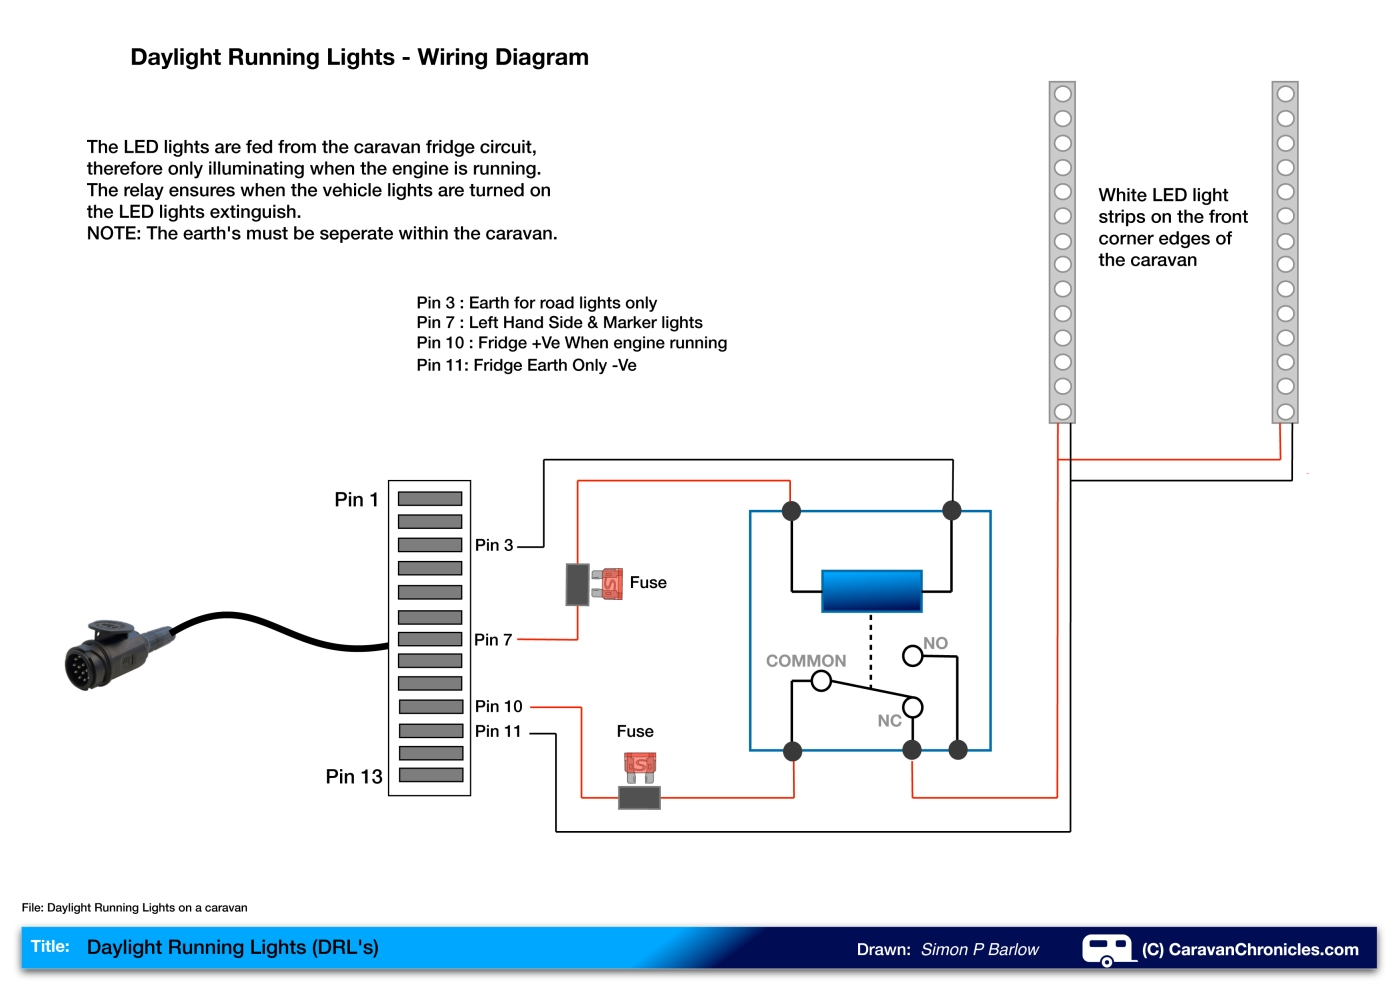 wiring diagram for led daytime running lights wiring library wiring daylight running lights drl s on a caravan caravan chronicles